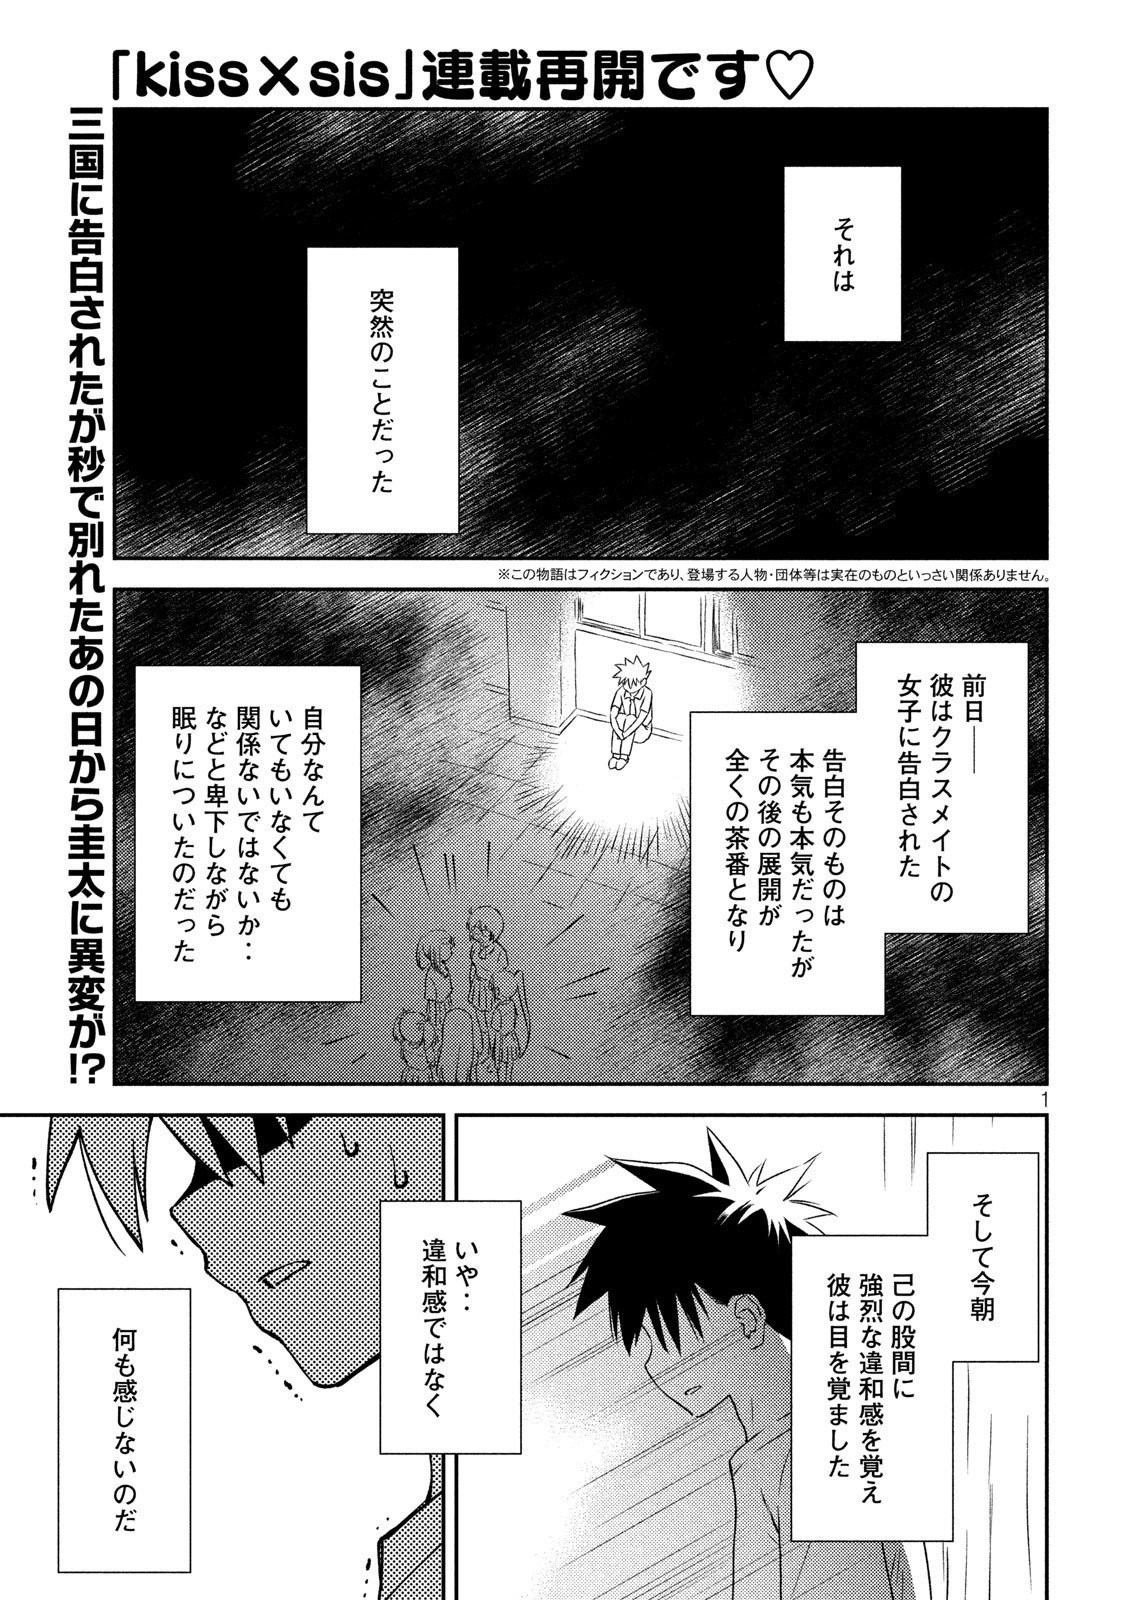 Kiss x Sis - Chapter 140 - Page 1